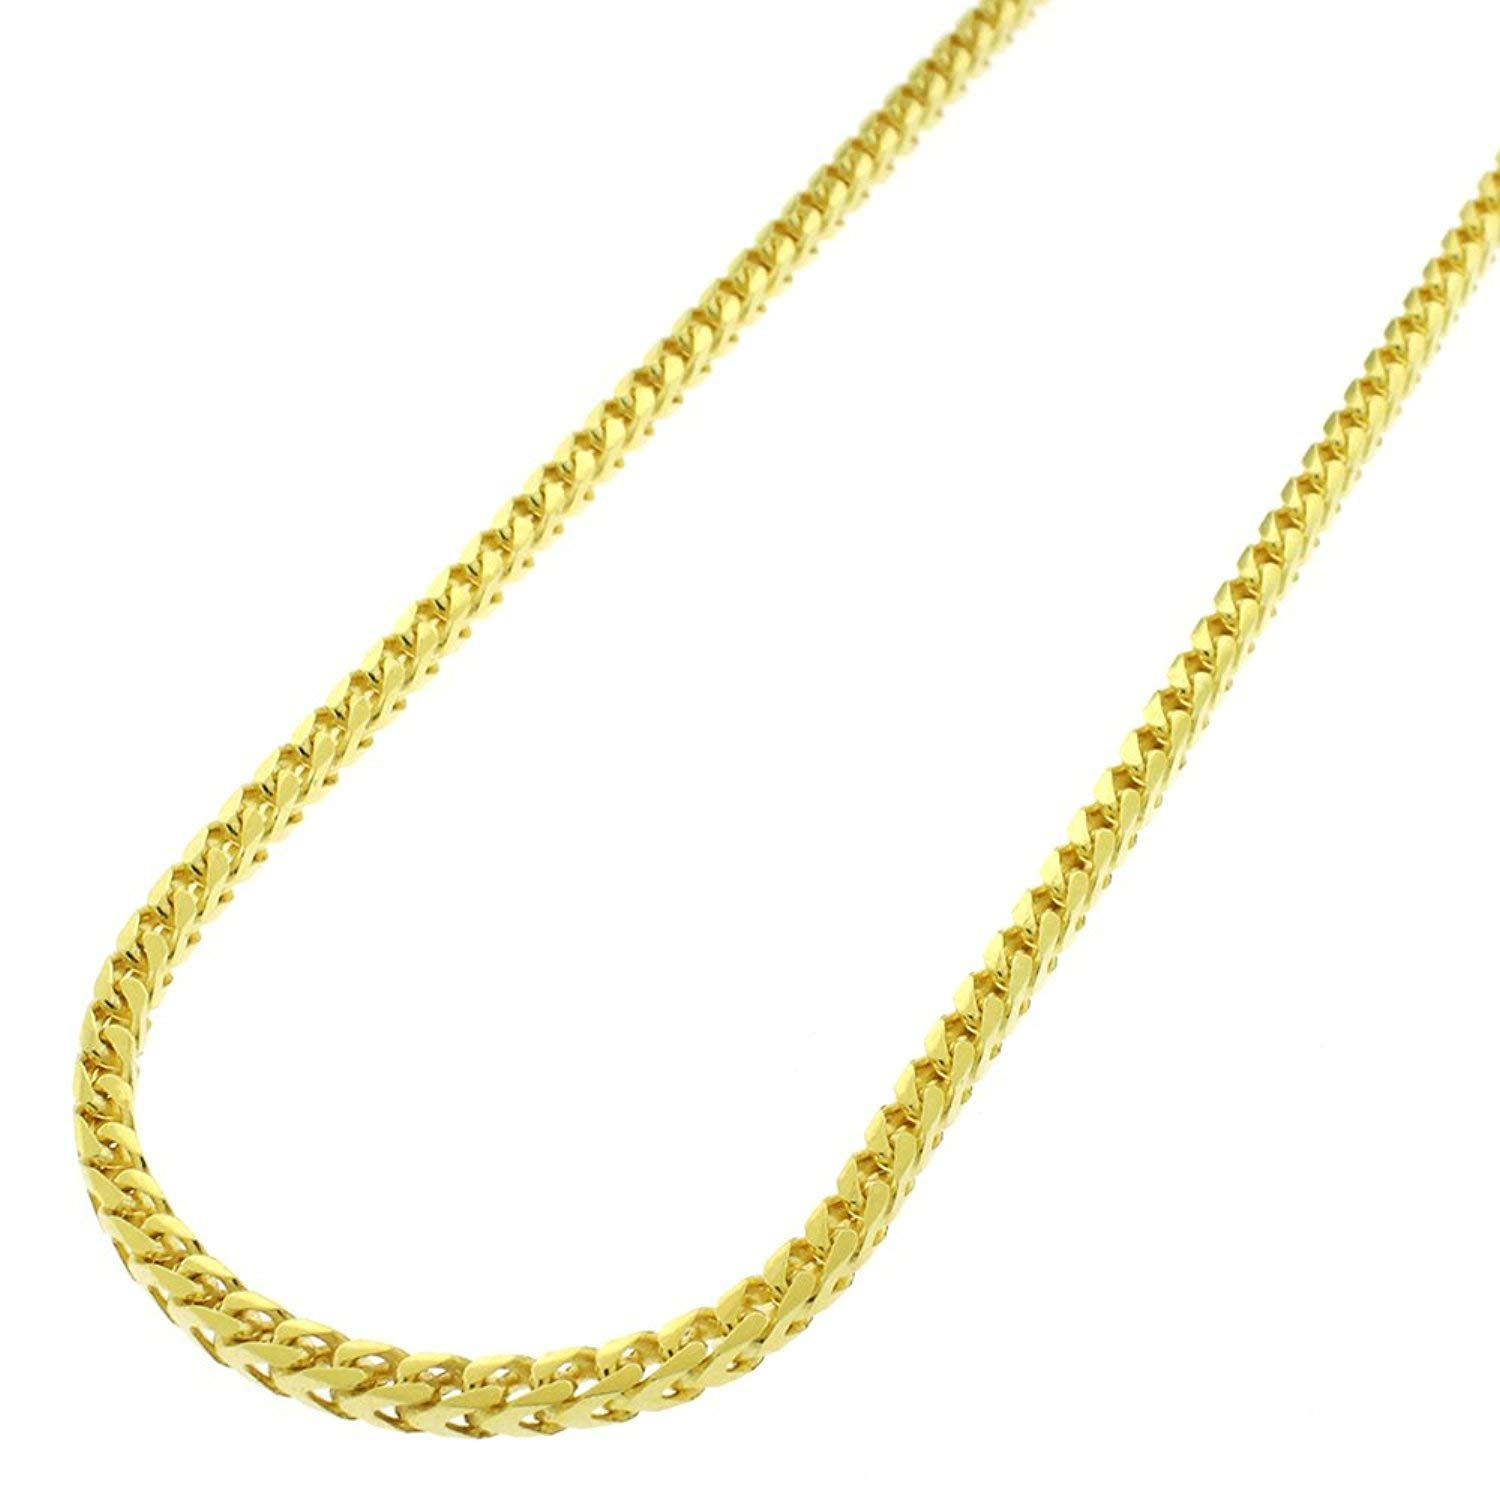 10K Gold 1.5MM, 1.9MM Square Franco Link Chain Necklace,10K Gold Franco Box Link Necklace, 10k Gold Necklace, 10k Gold Chain 16-30